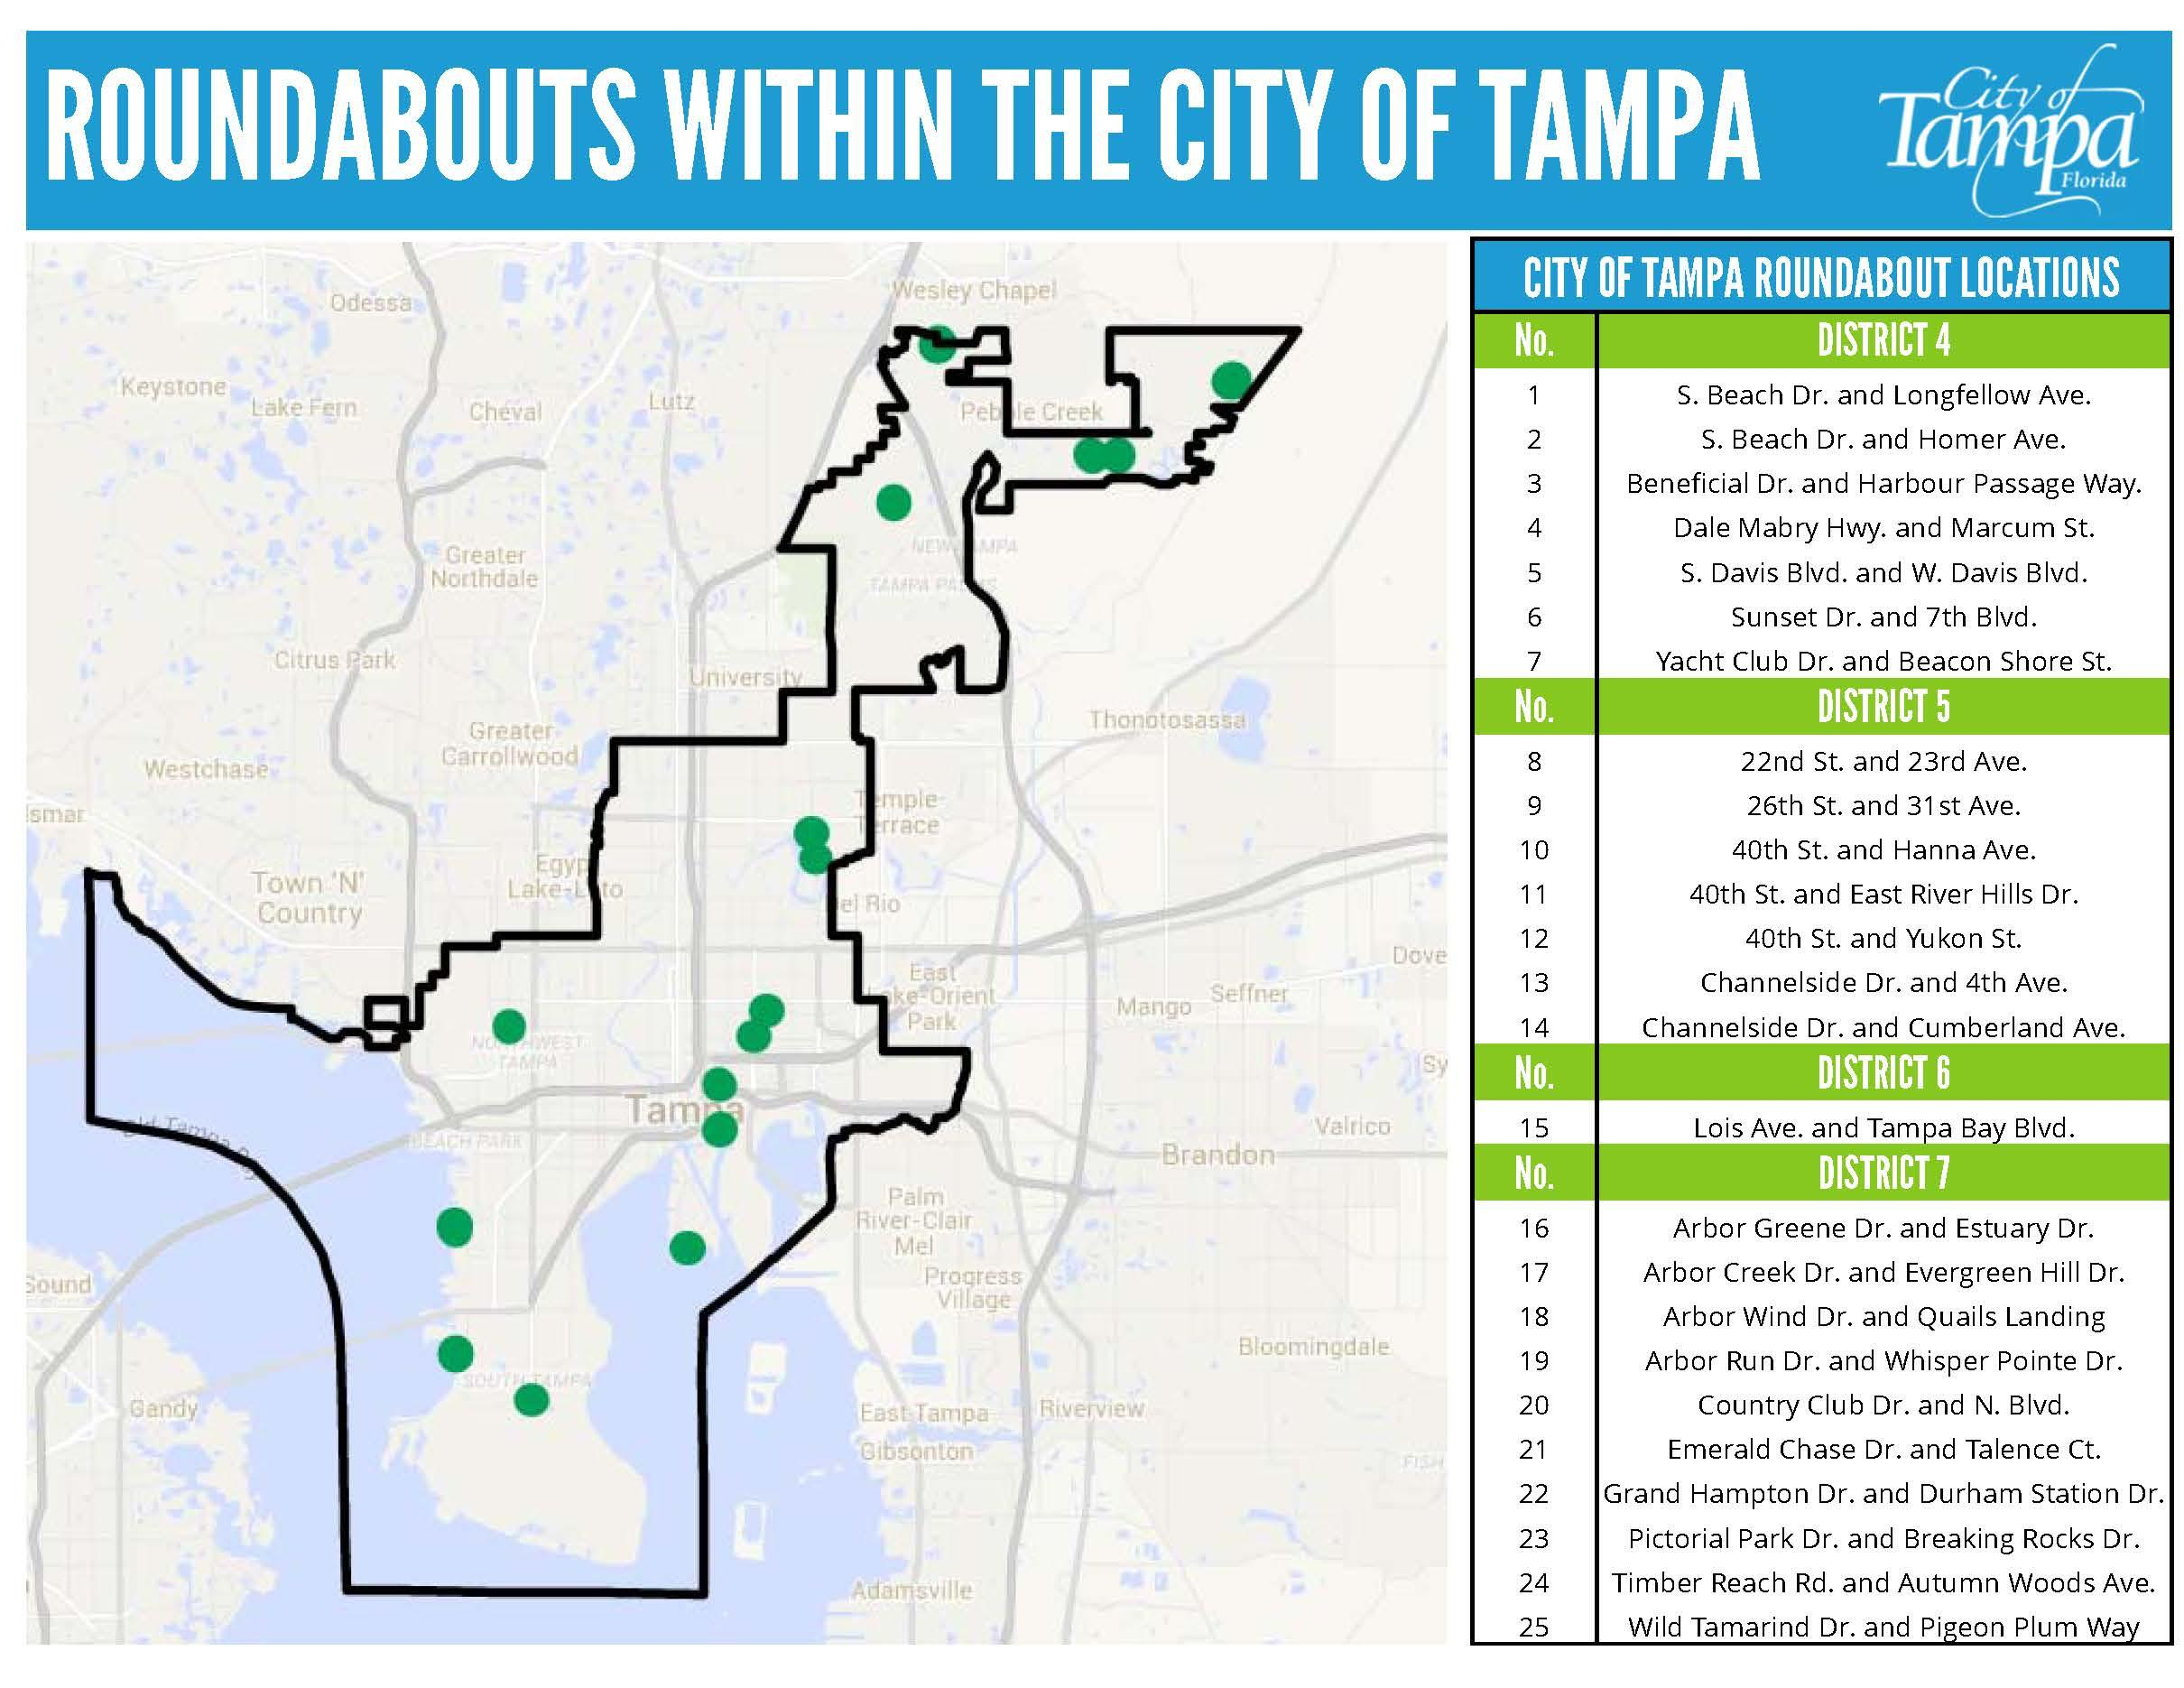 City of Tampa Roundabouts Map